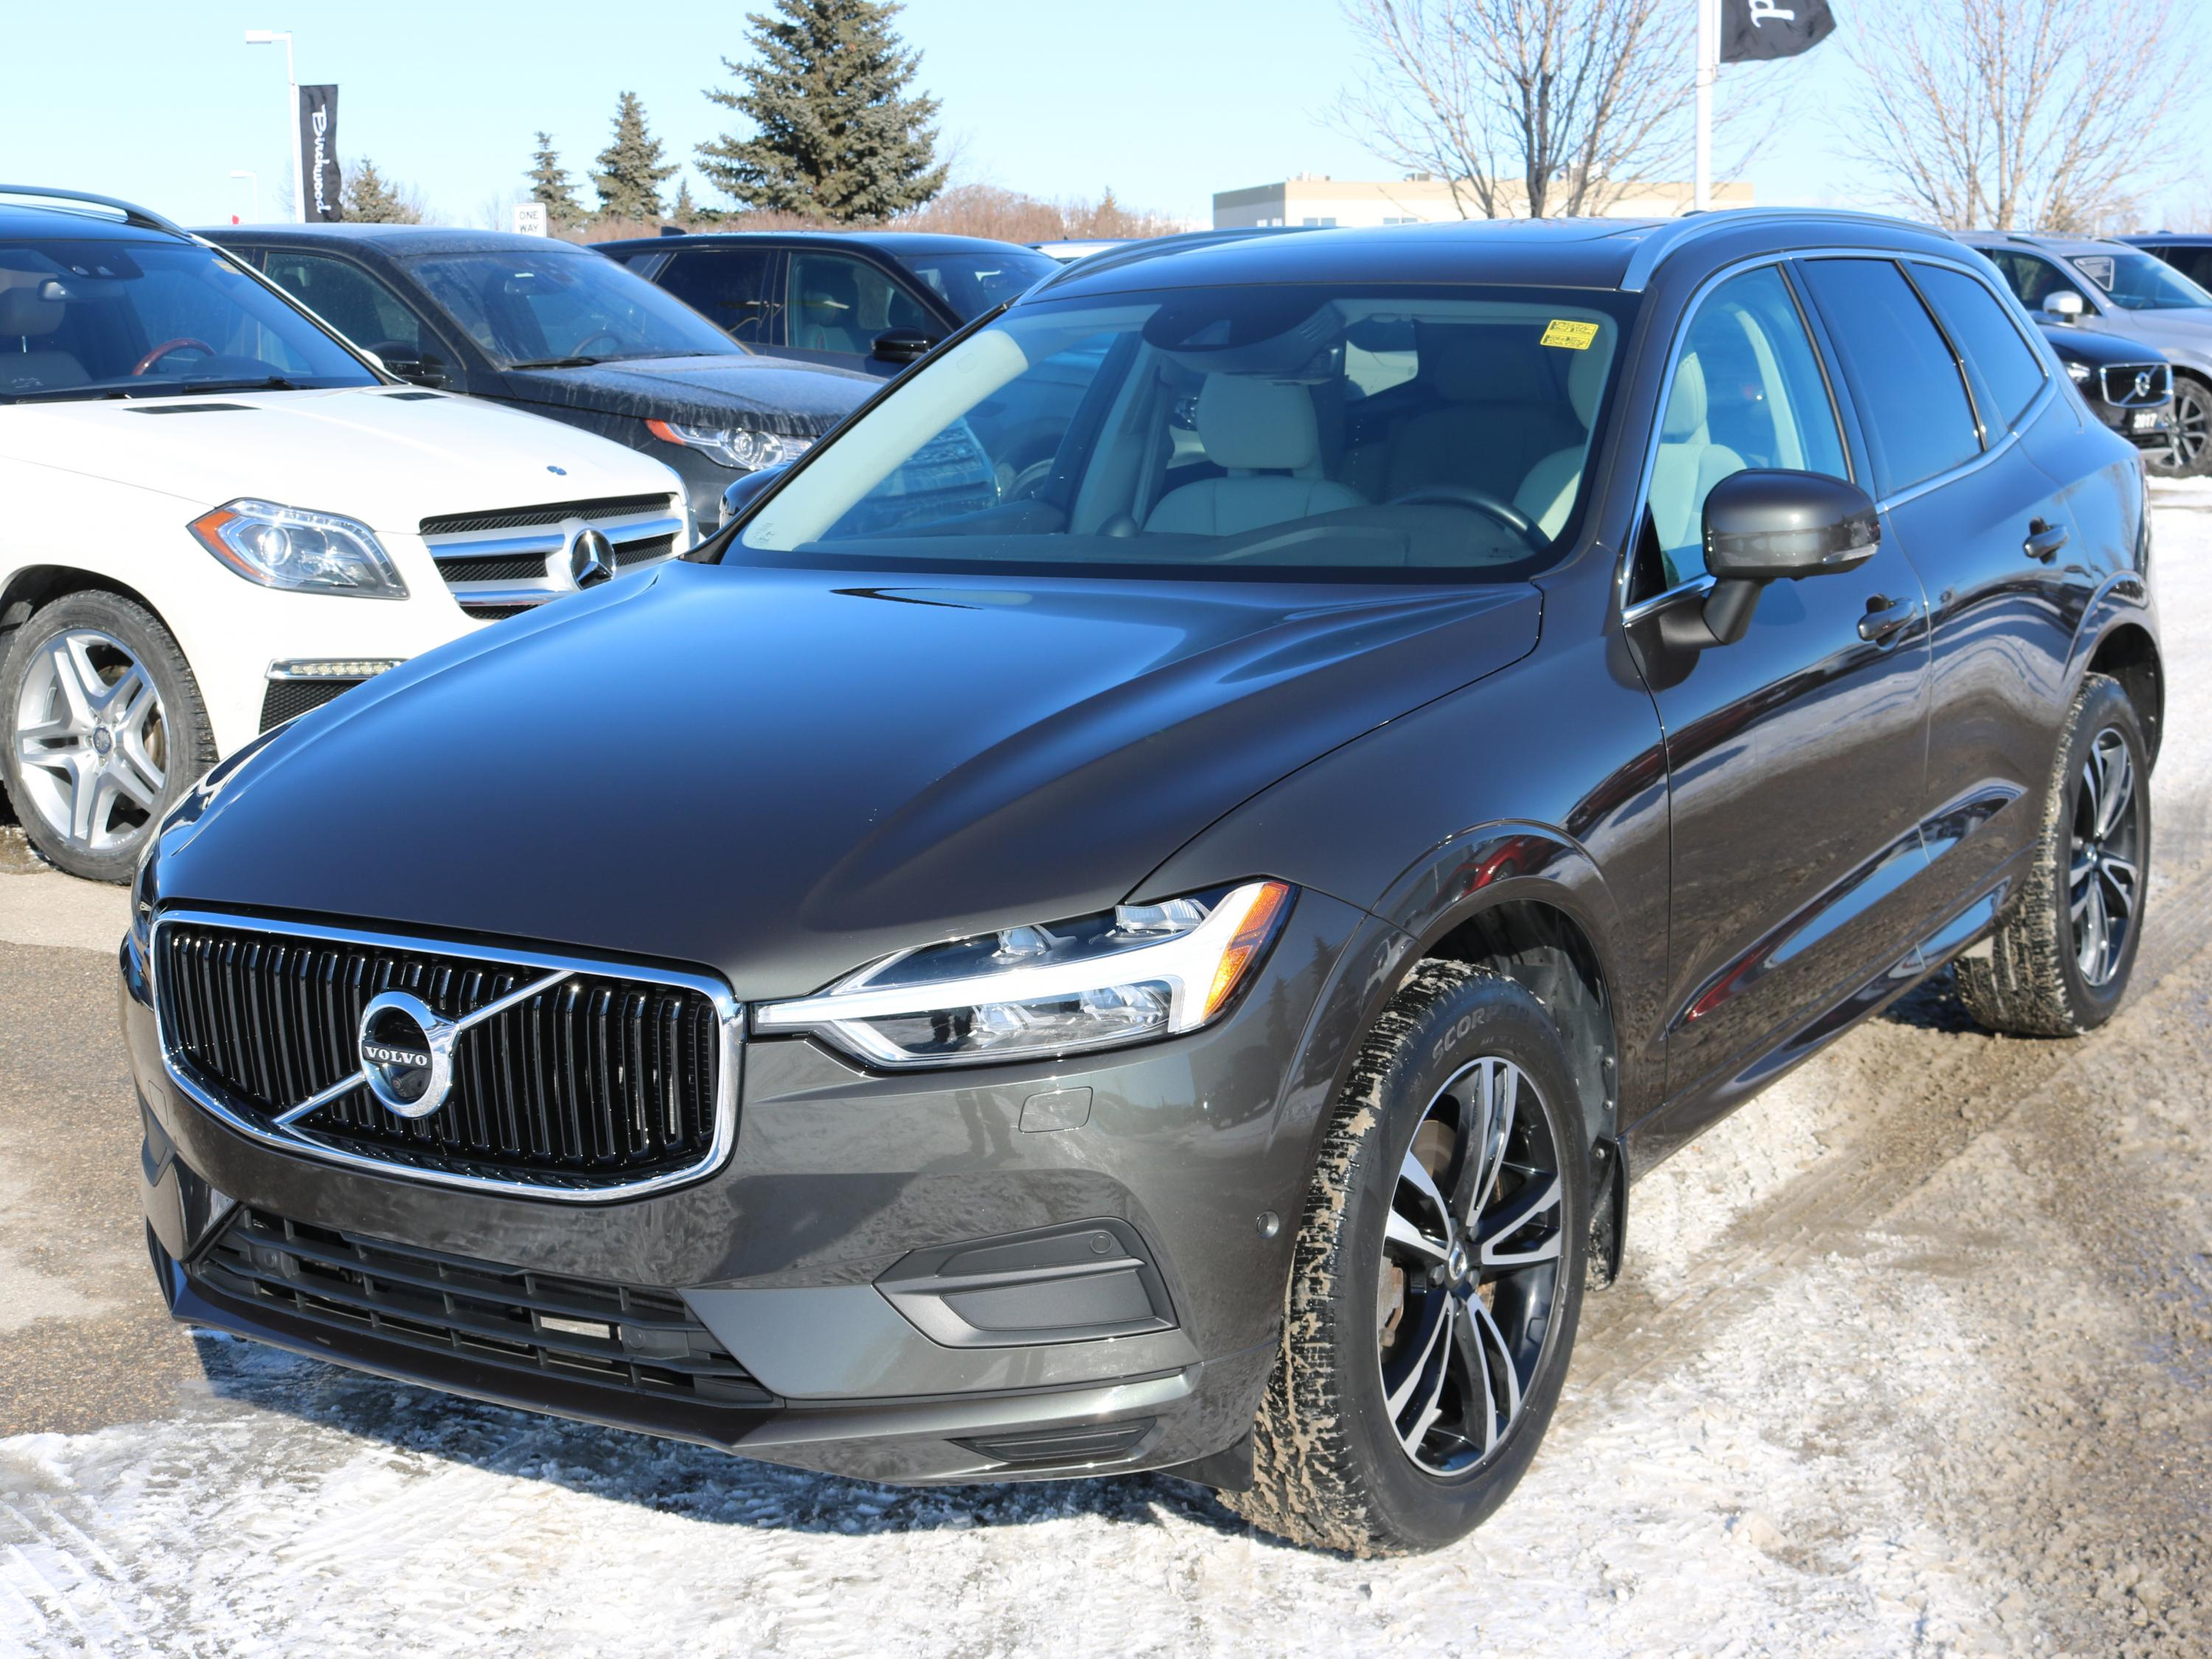 Pre-Owned 2018 Volvo XC60 Momentum SOLD! Check out the other 2